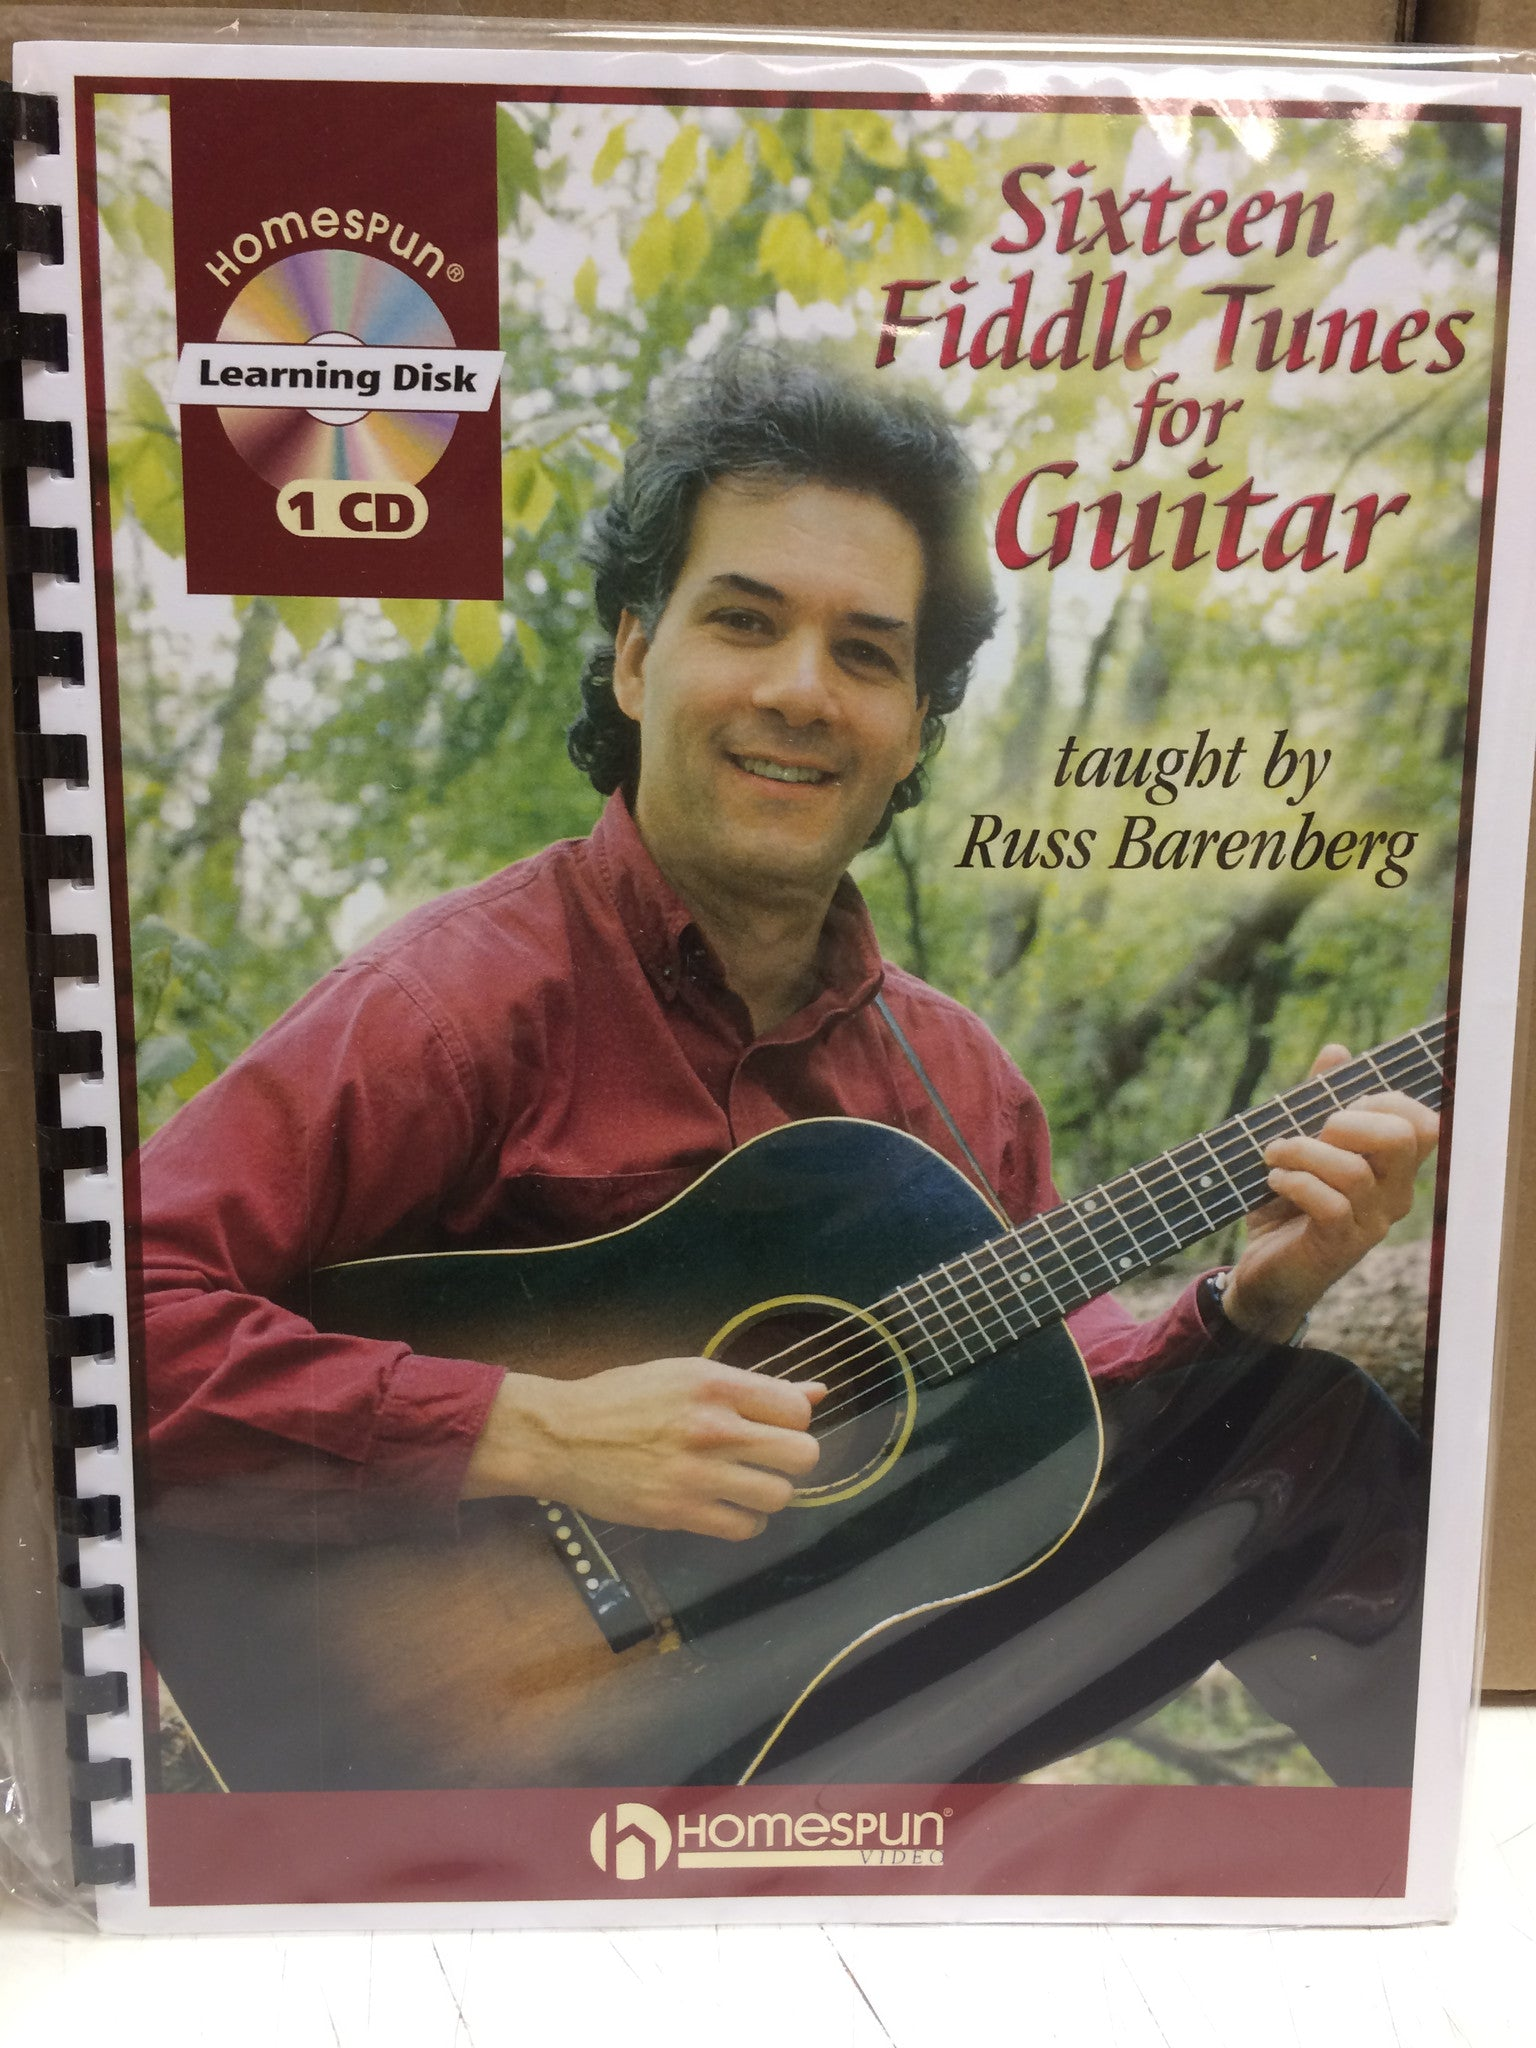 16 Fiddle Tunes for Guitar - Russ Barenberg from Compass Records